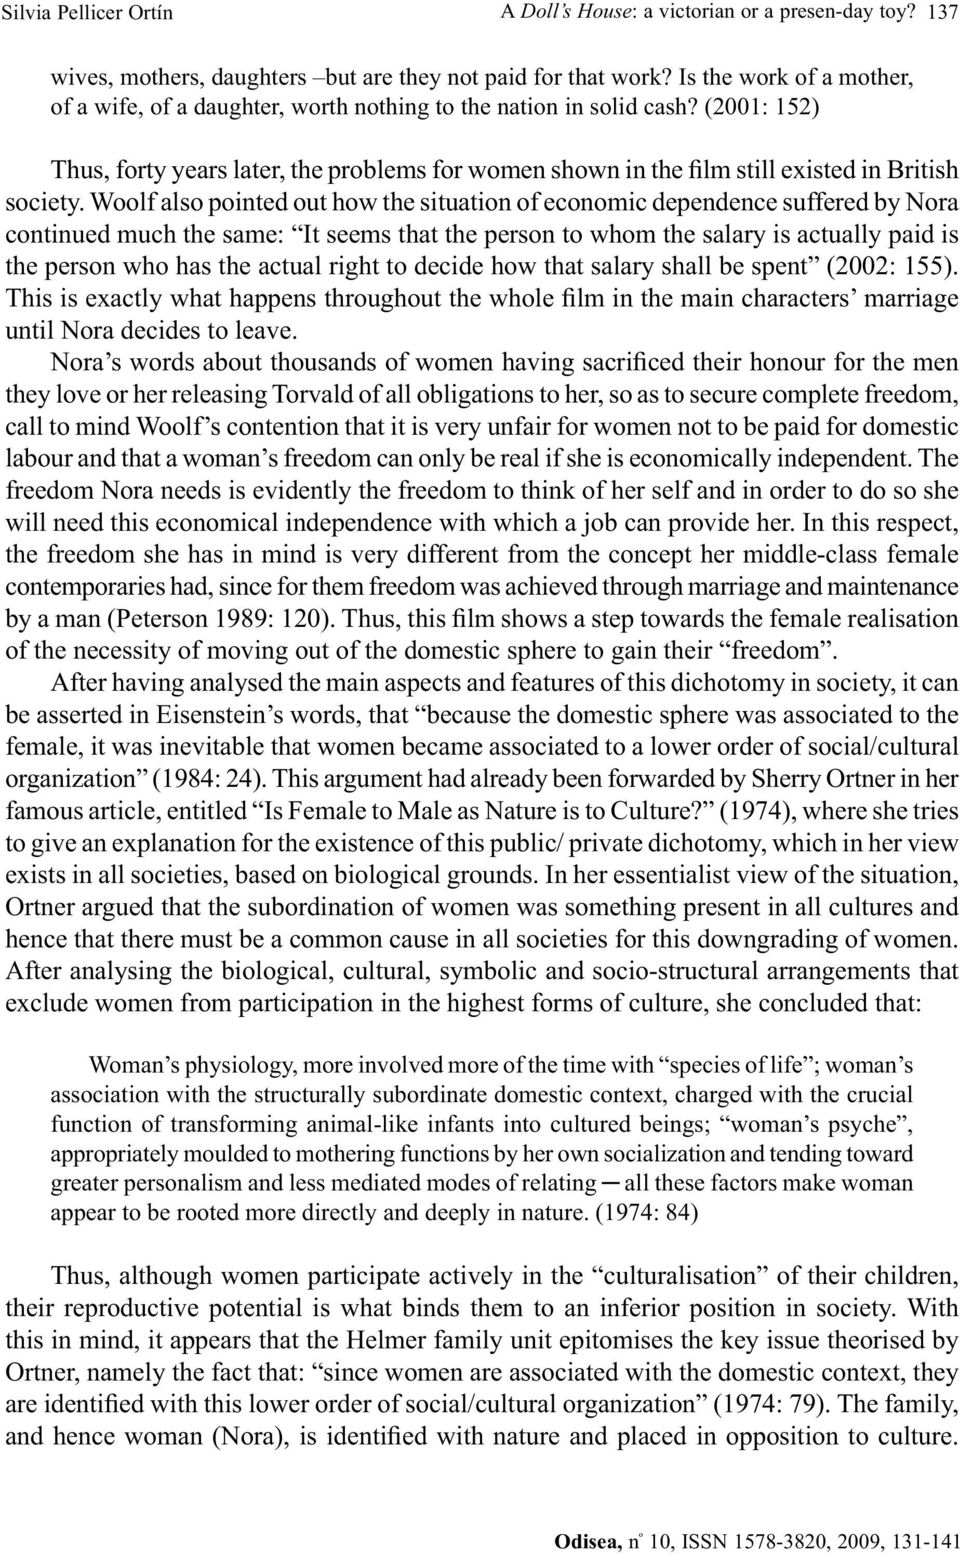 (2001: 152) Thus, forty years later, the problems for women shown in the film still existed in British society.